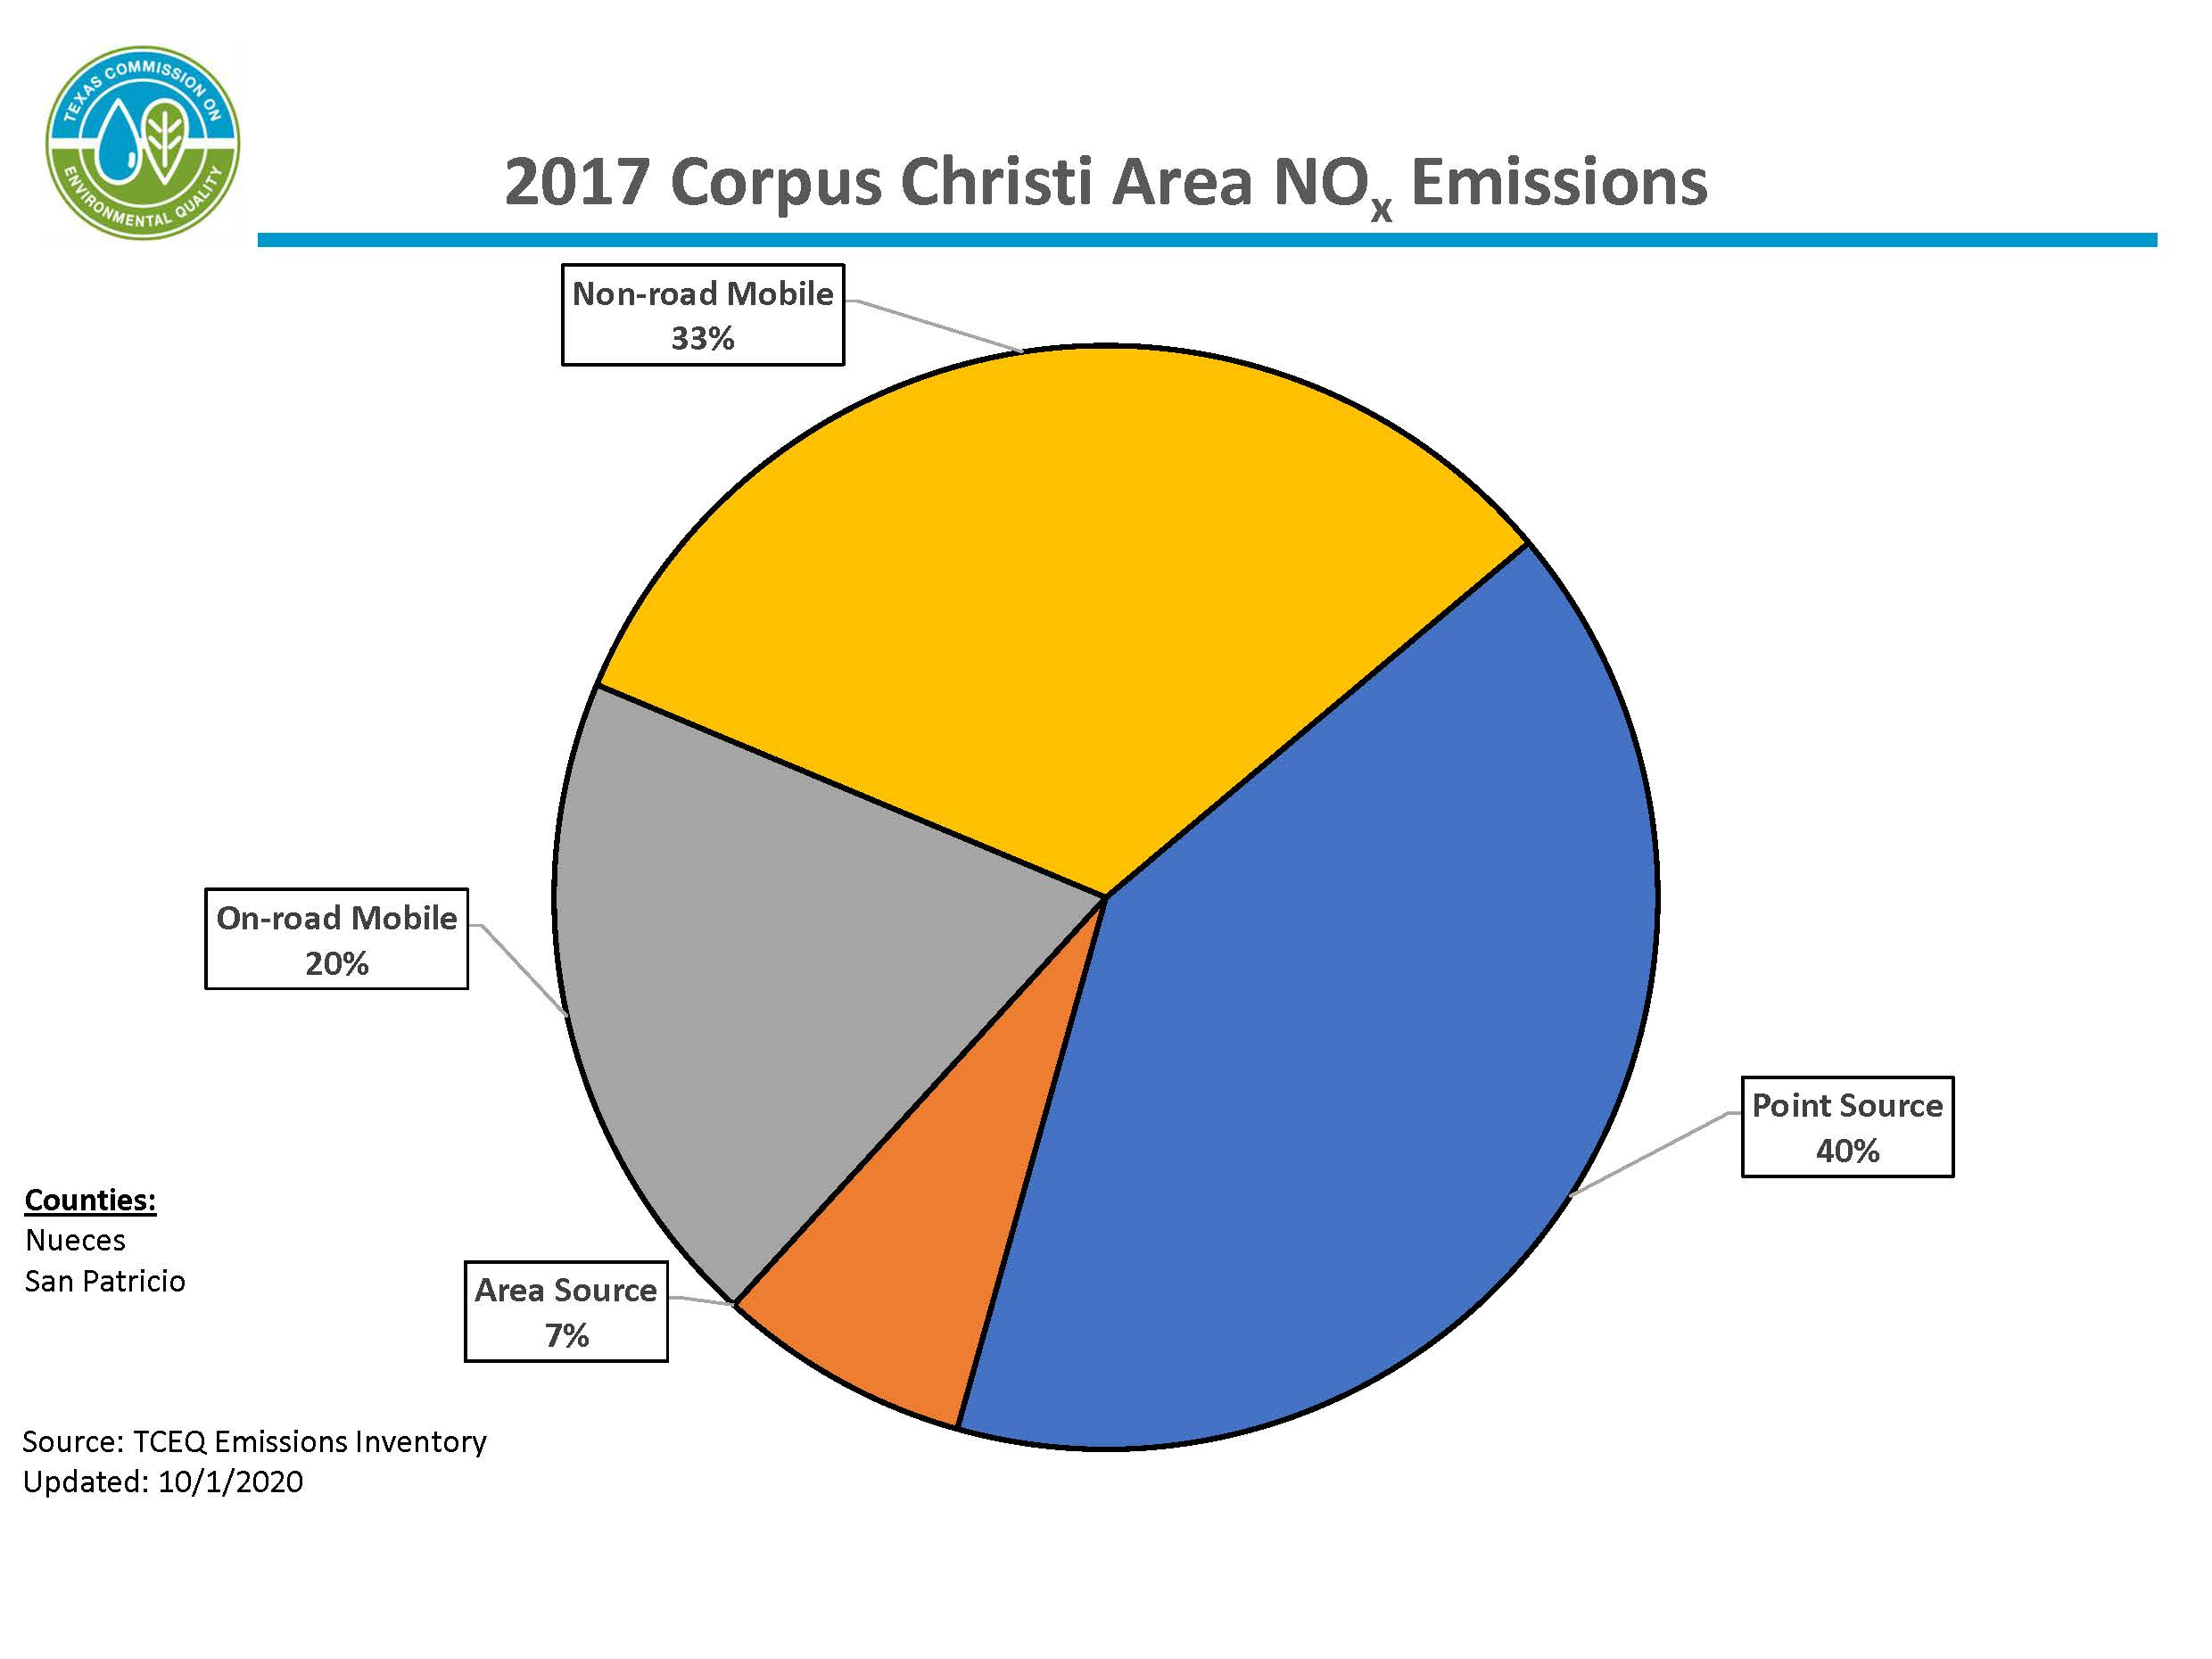 This chart represents calendar year 2017 nitrogen oxide emissions for the Corpus Christi area. The Corpus Christi area includes Nueces and San Patricio counties. 51 percent of emissions are from mobile sources, 41 percent of emissions are from point sources, and 8 percent of emissions are from area sources.